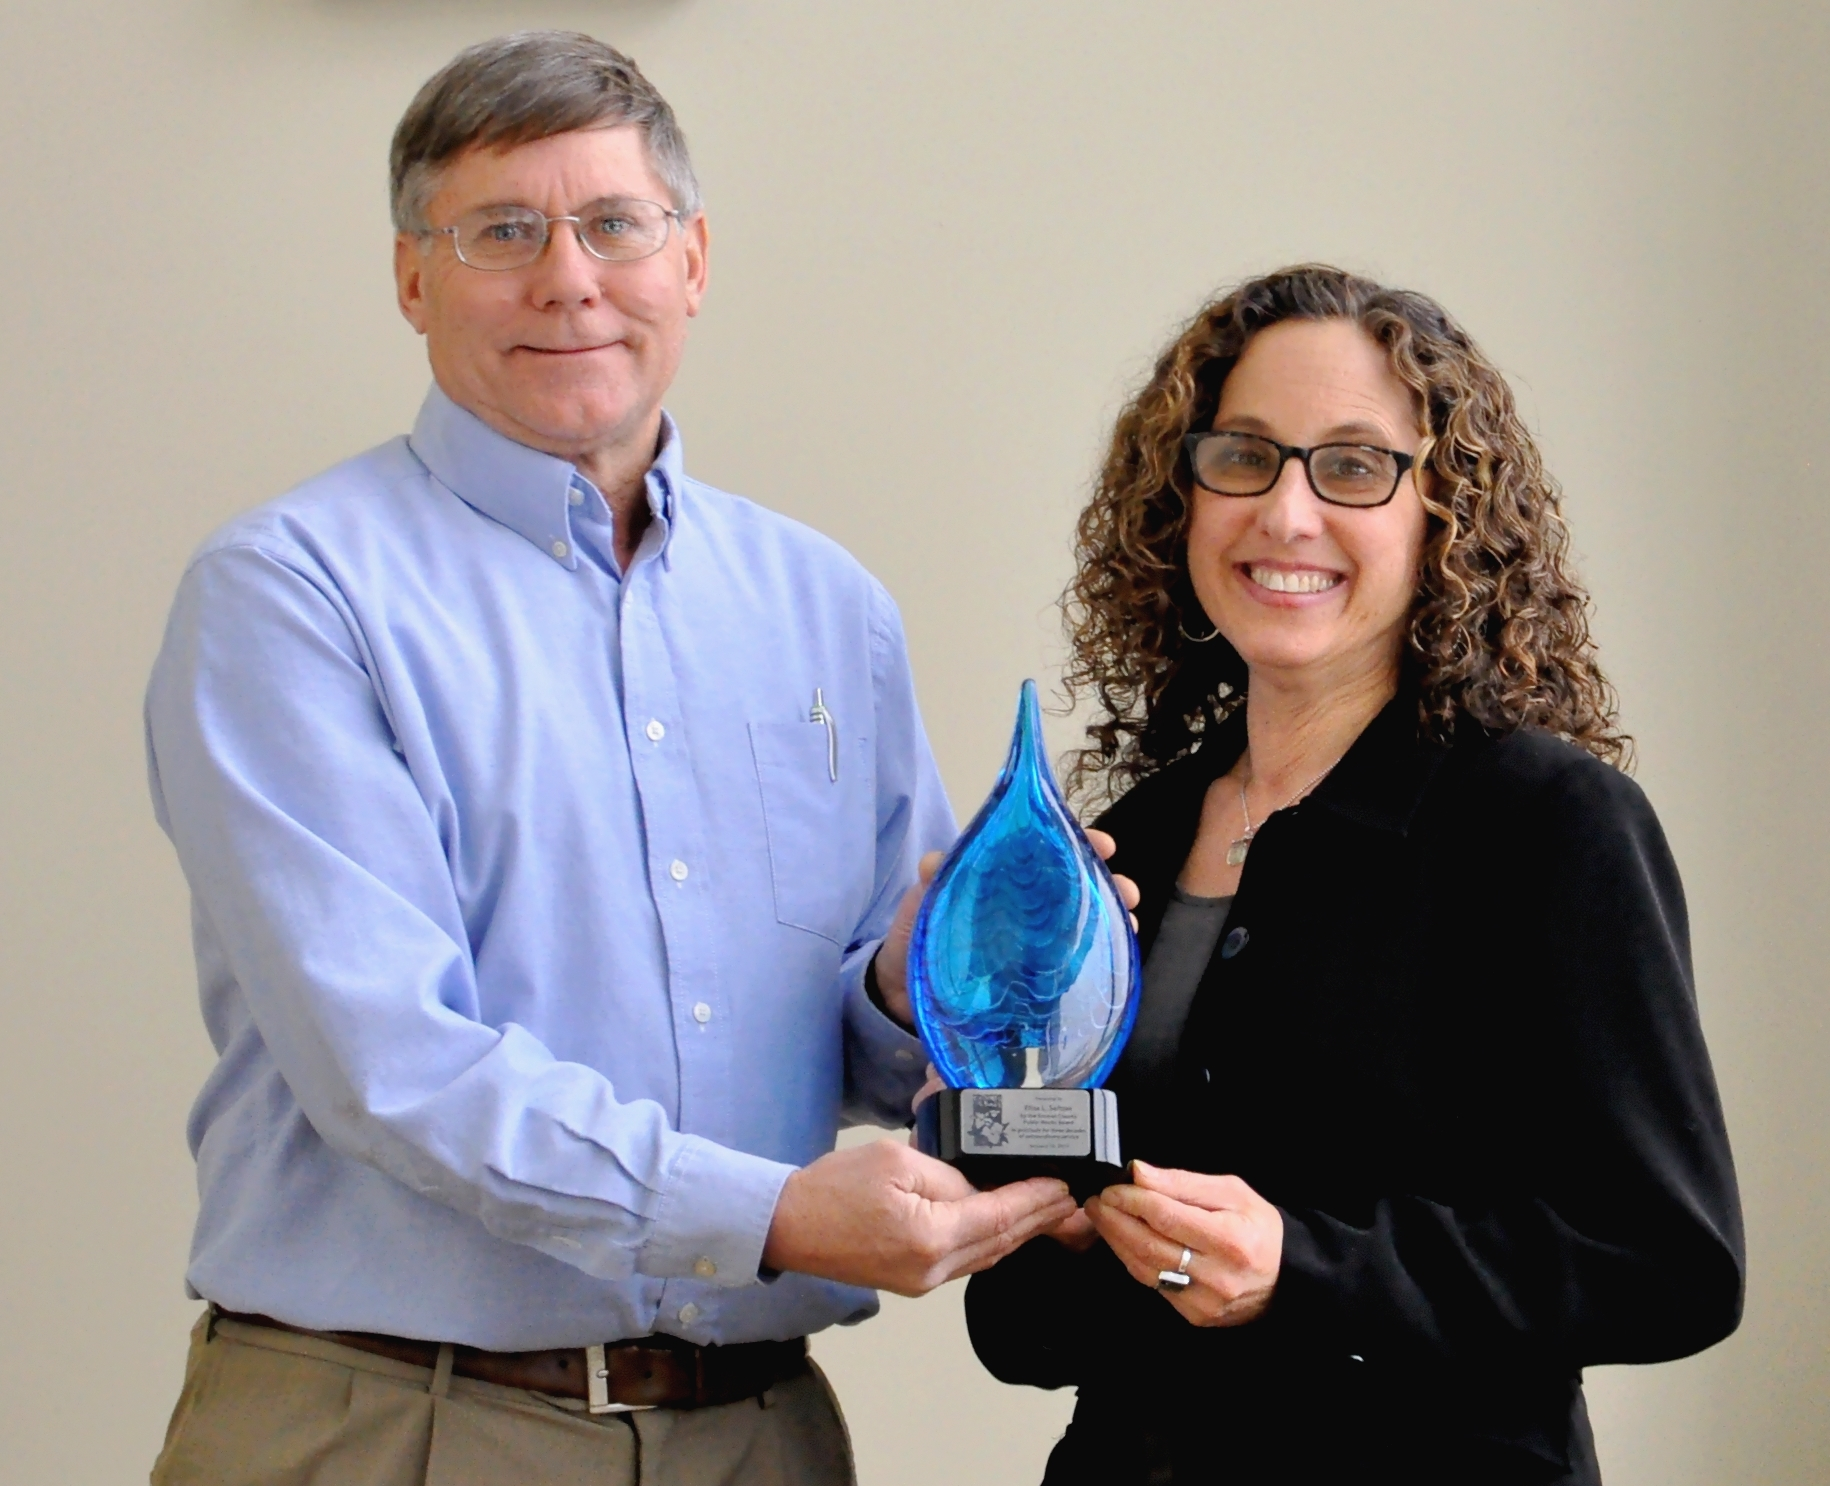 Photo of Denny Keiser presenting sculpture to Elisa at January DPW Board Meeting